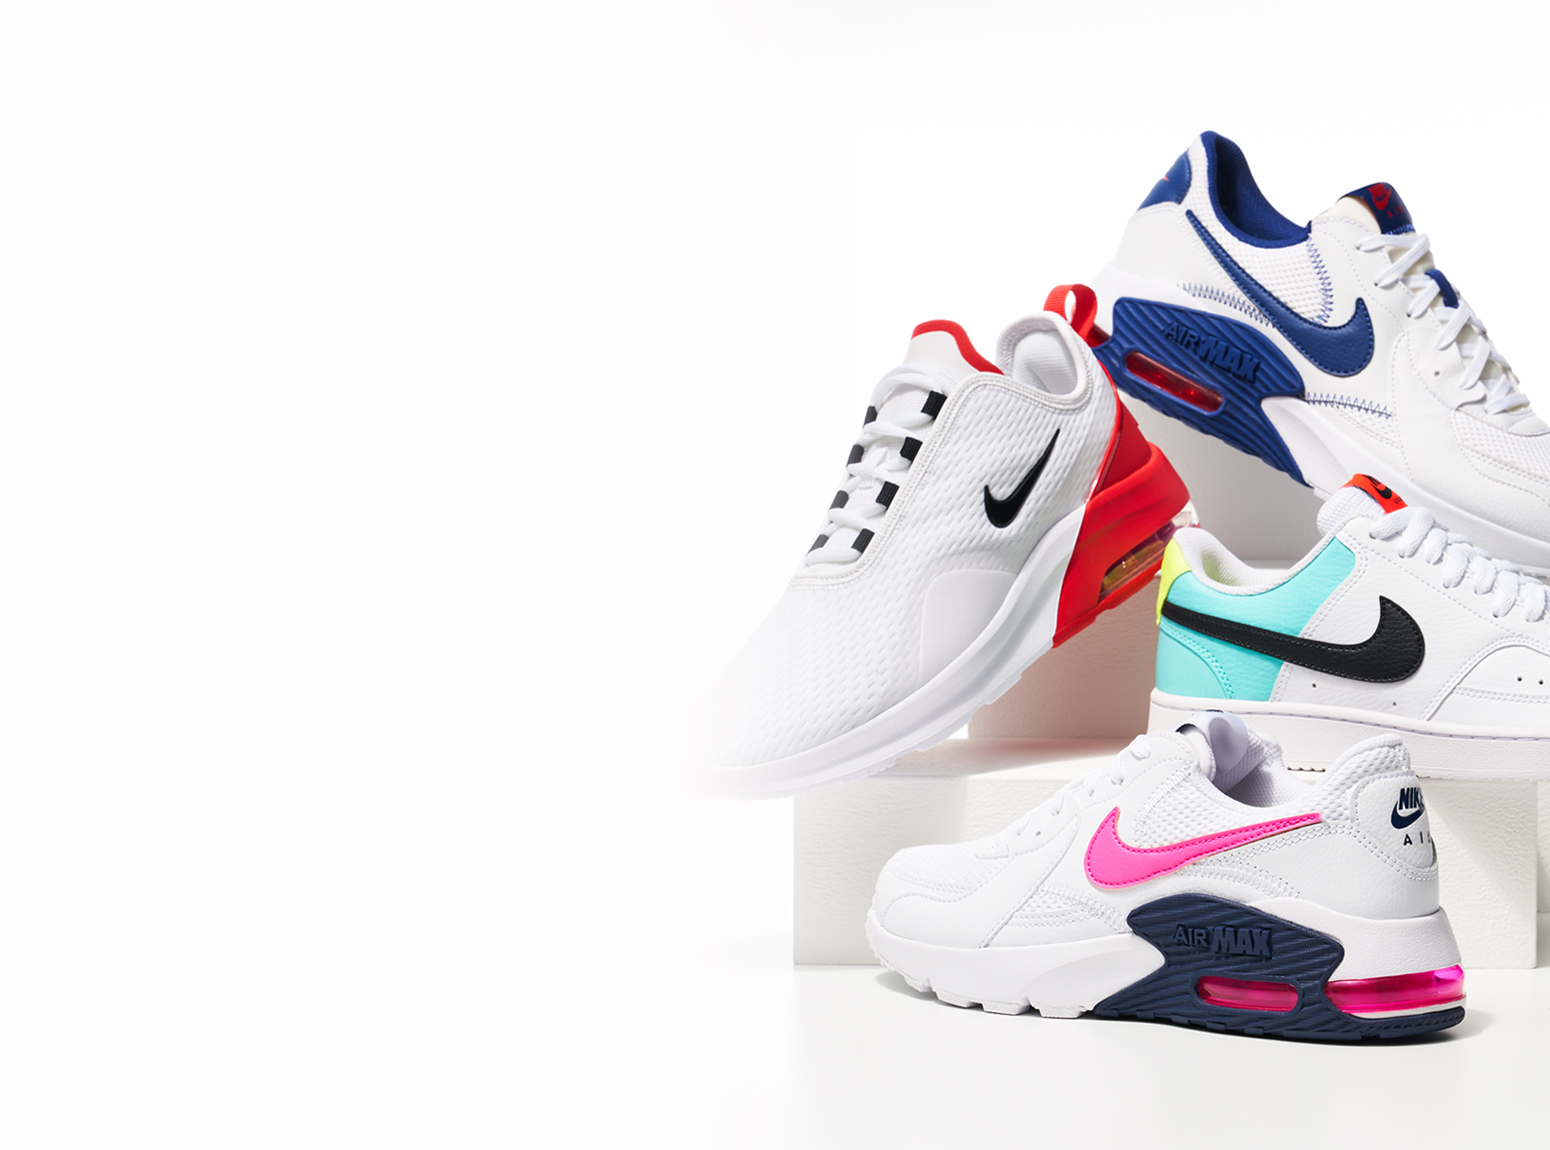 assorted stylish nike atletic shoes